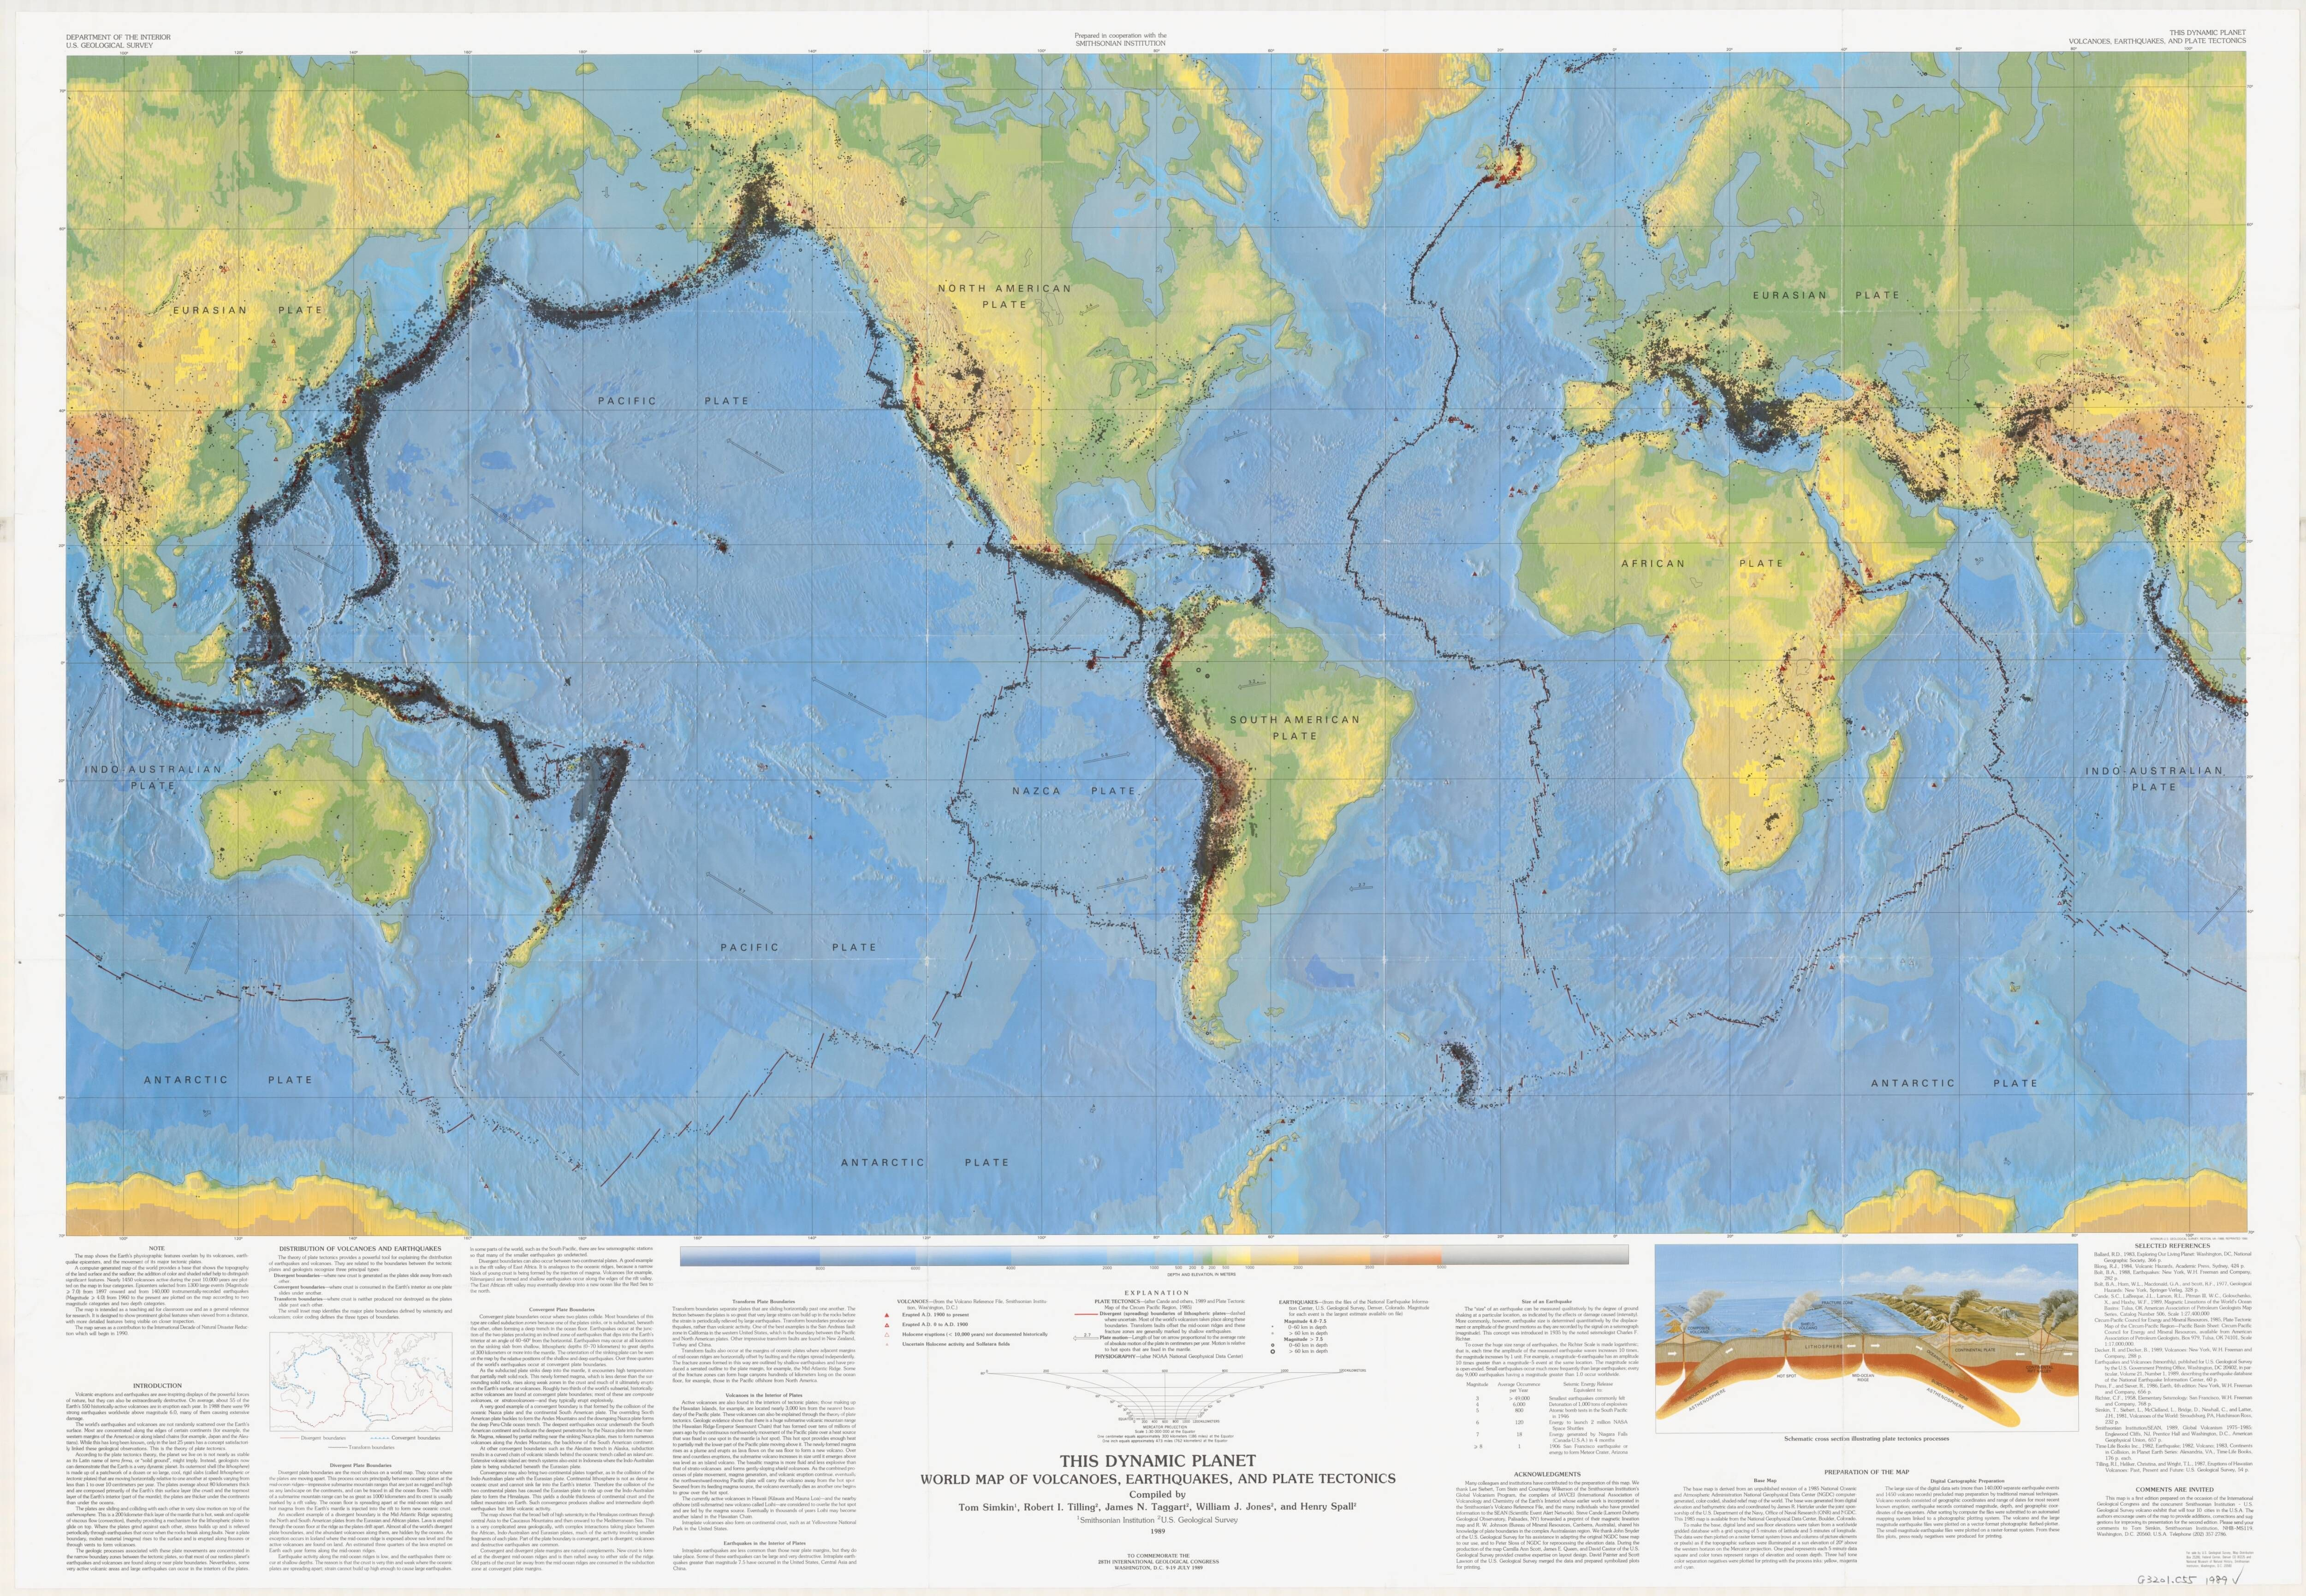 This dynamic planet 1989 world map of volcanoes earthquakes this dynamic planet world map of volcanoes earthquakes and plate tectonics gumiabroncs Choice Image